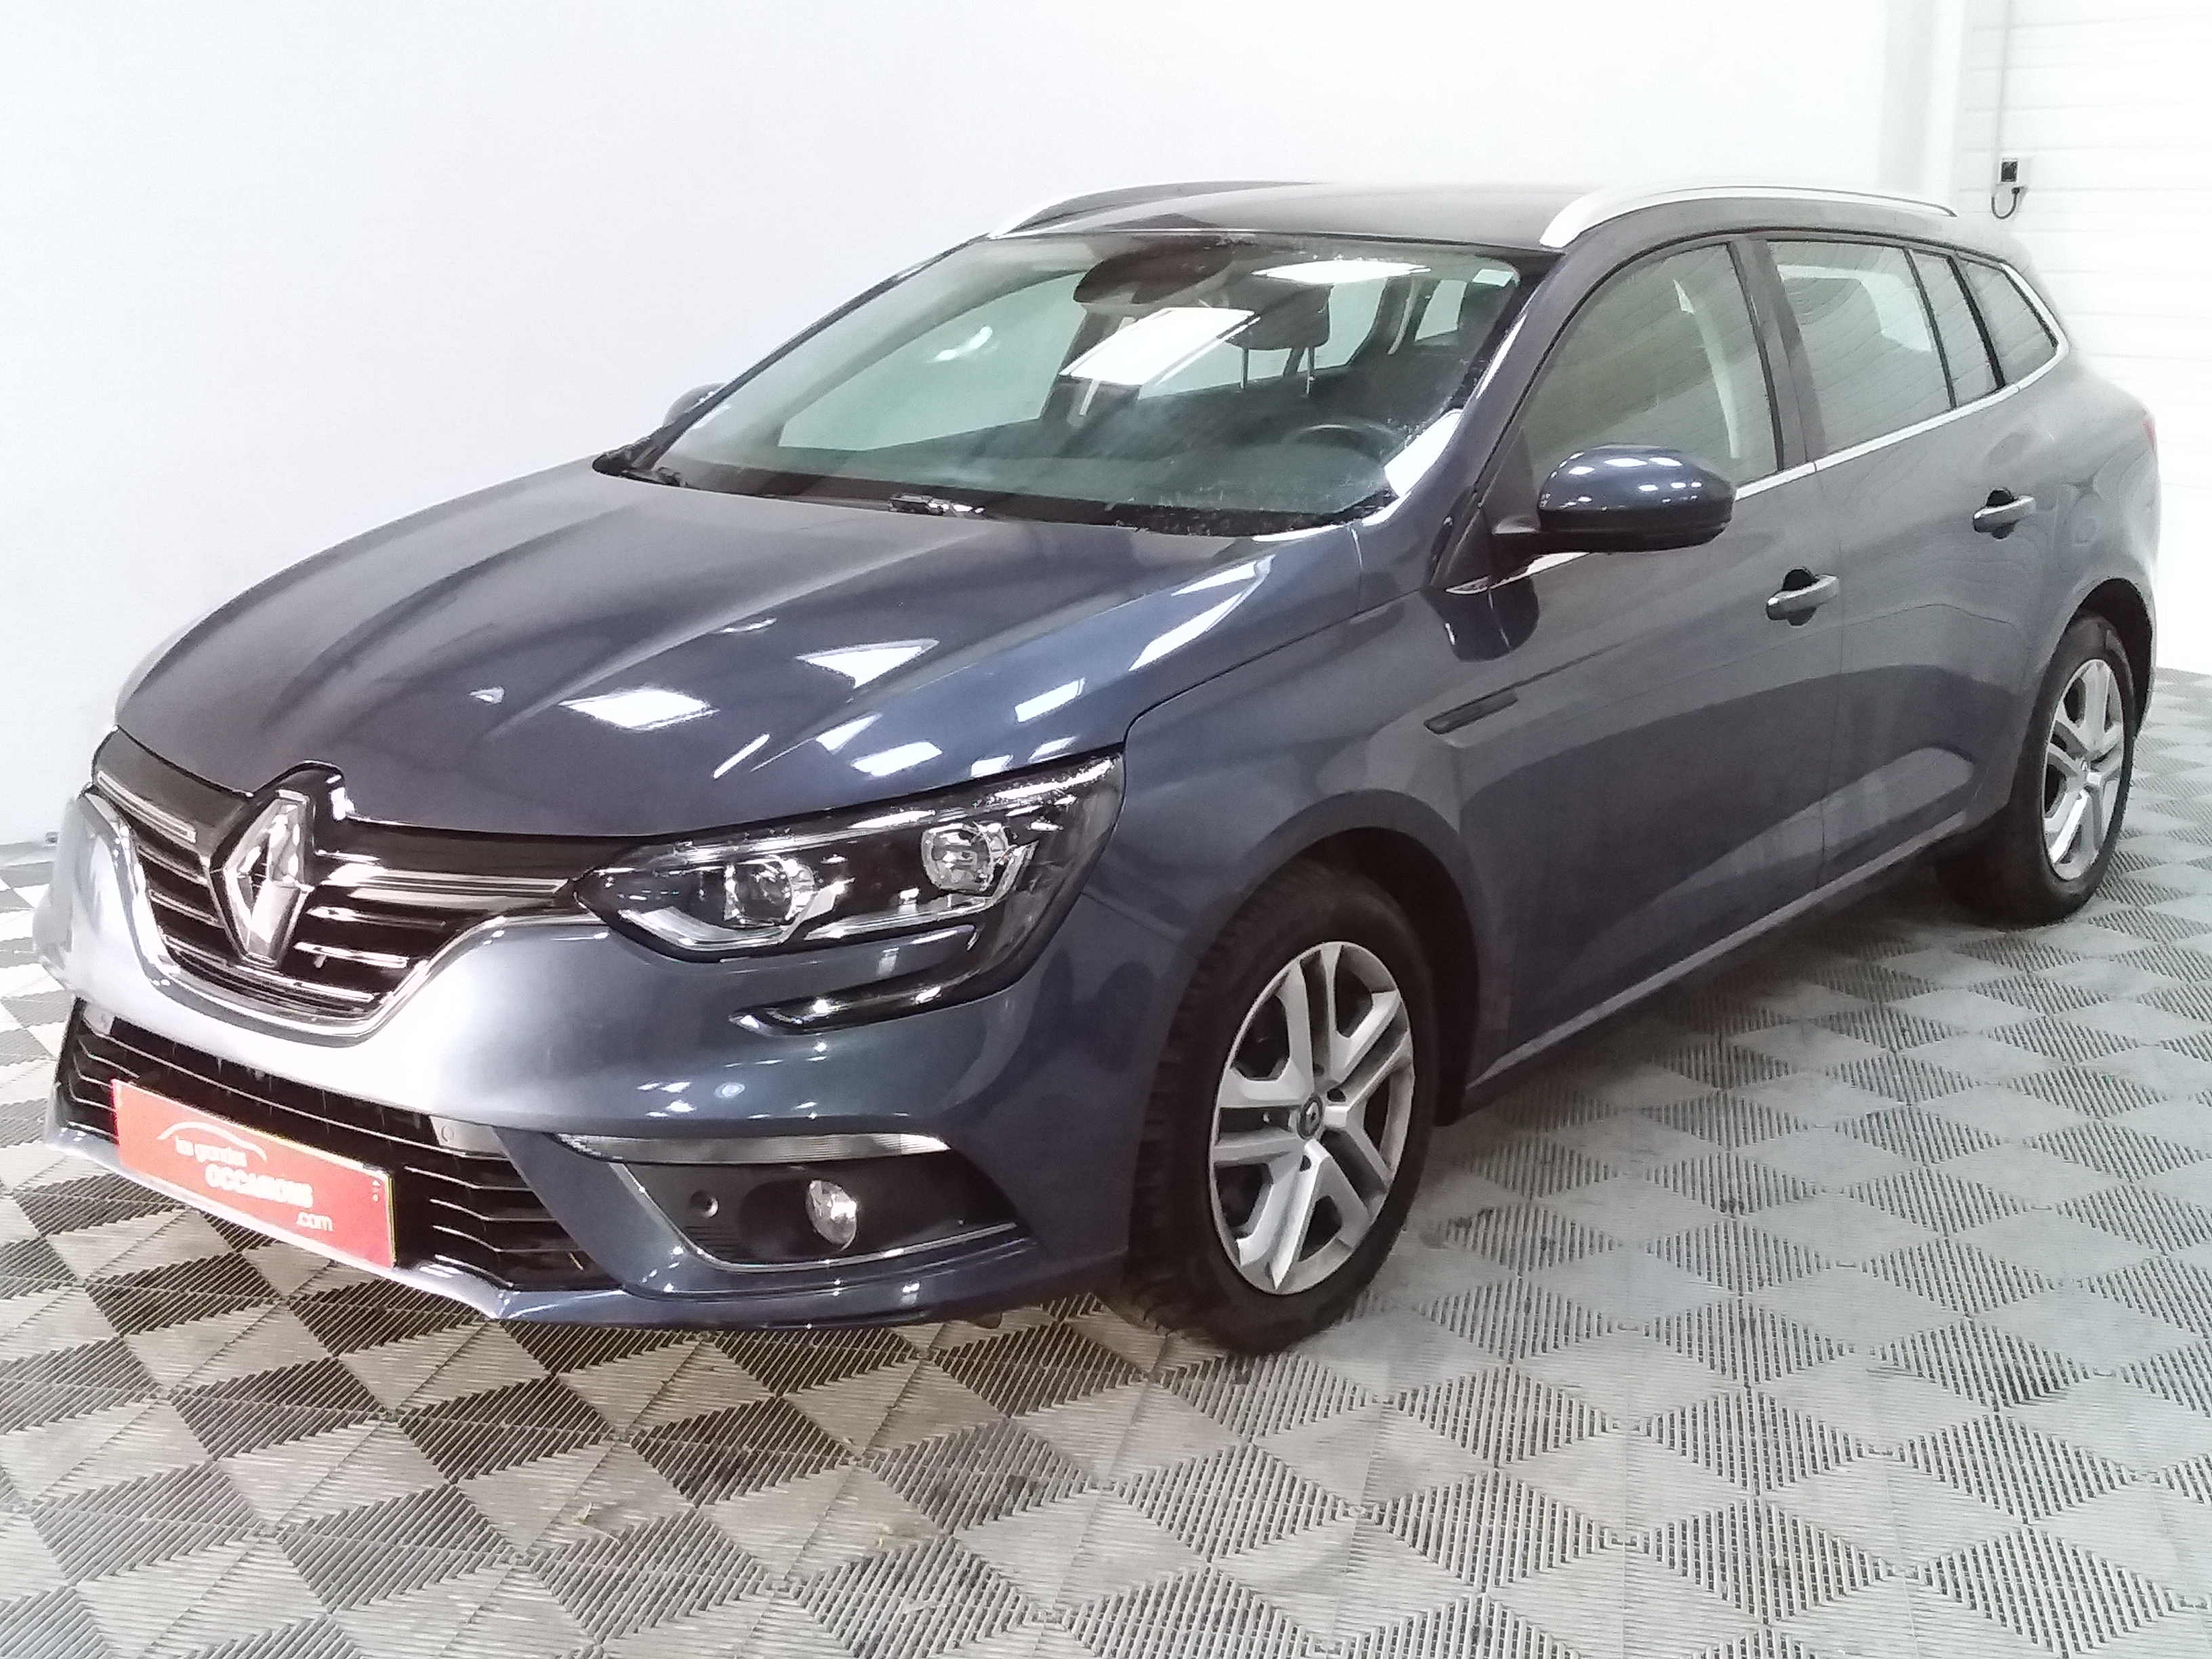 RENAULT MEGANE IV ESTATE BUSINESS 1.5 dCi 110ch energy Business eco² 90g d'occasion